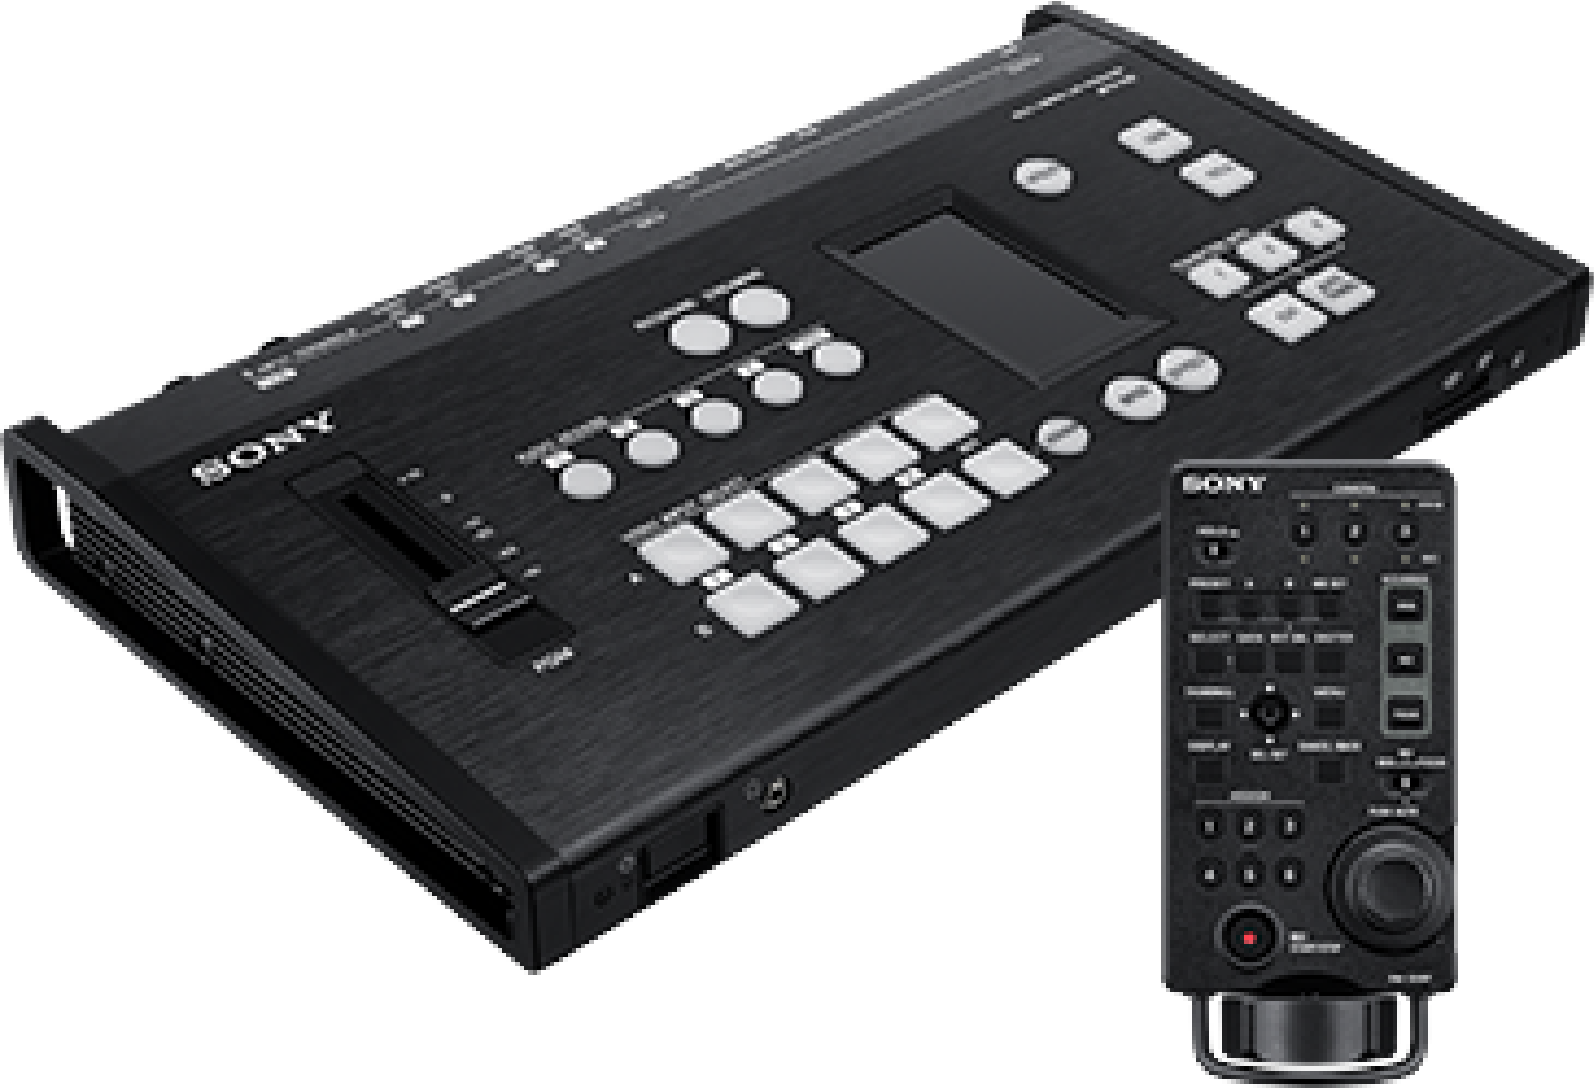 Sony's MCX-500 live producer